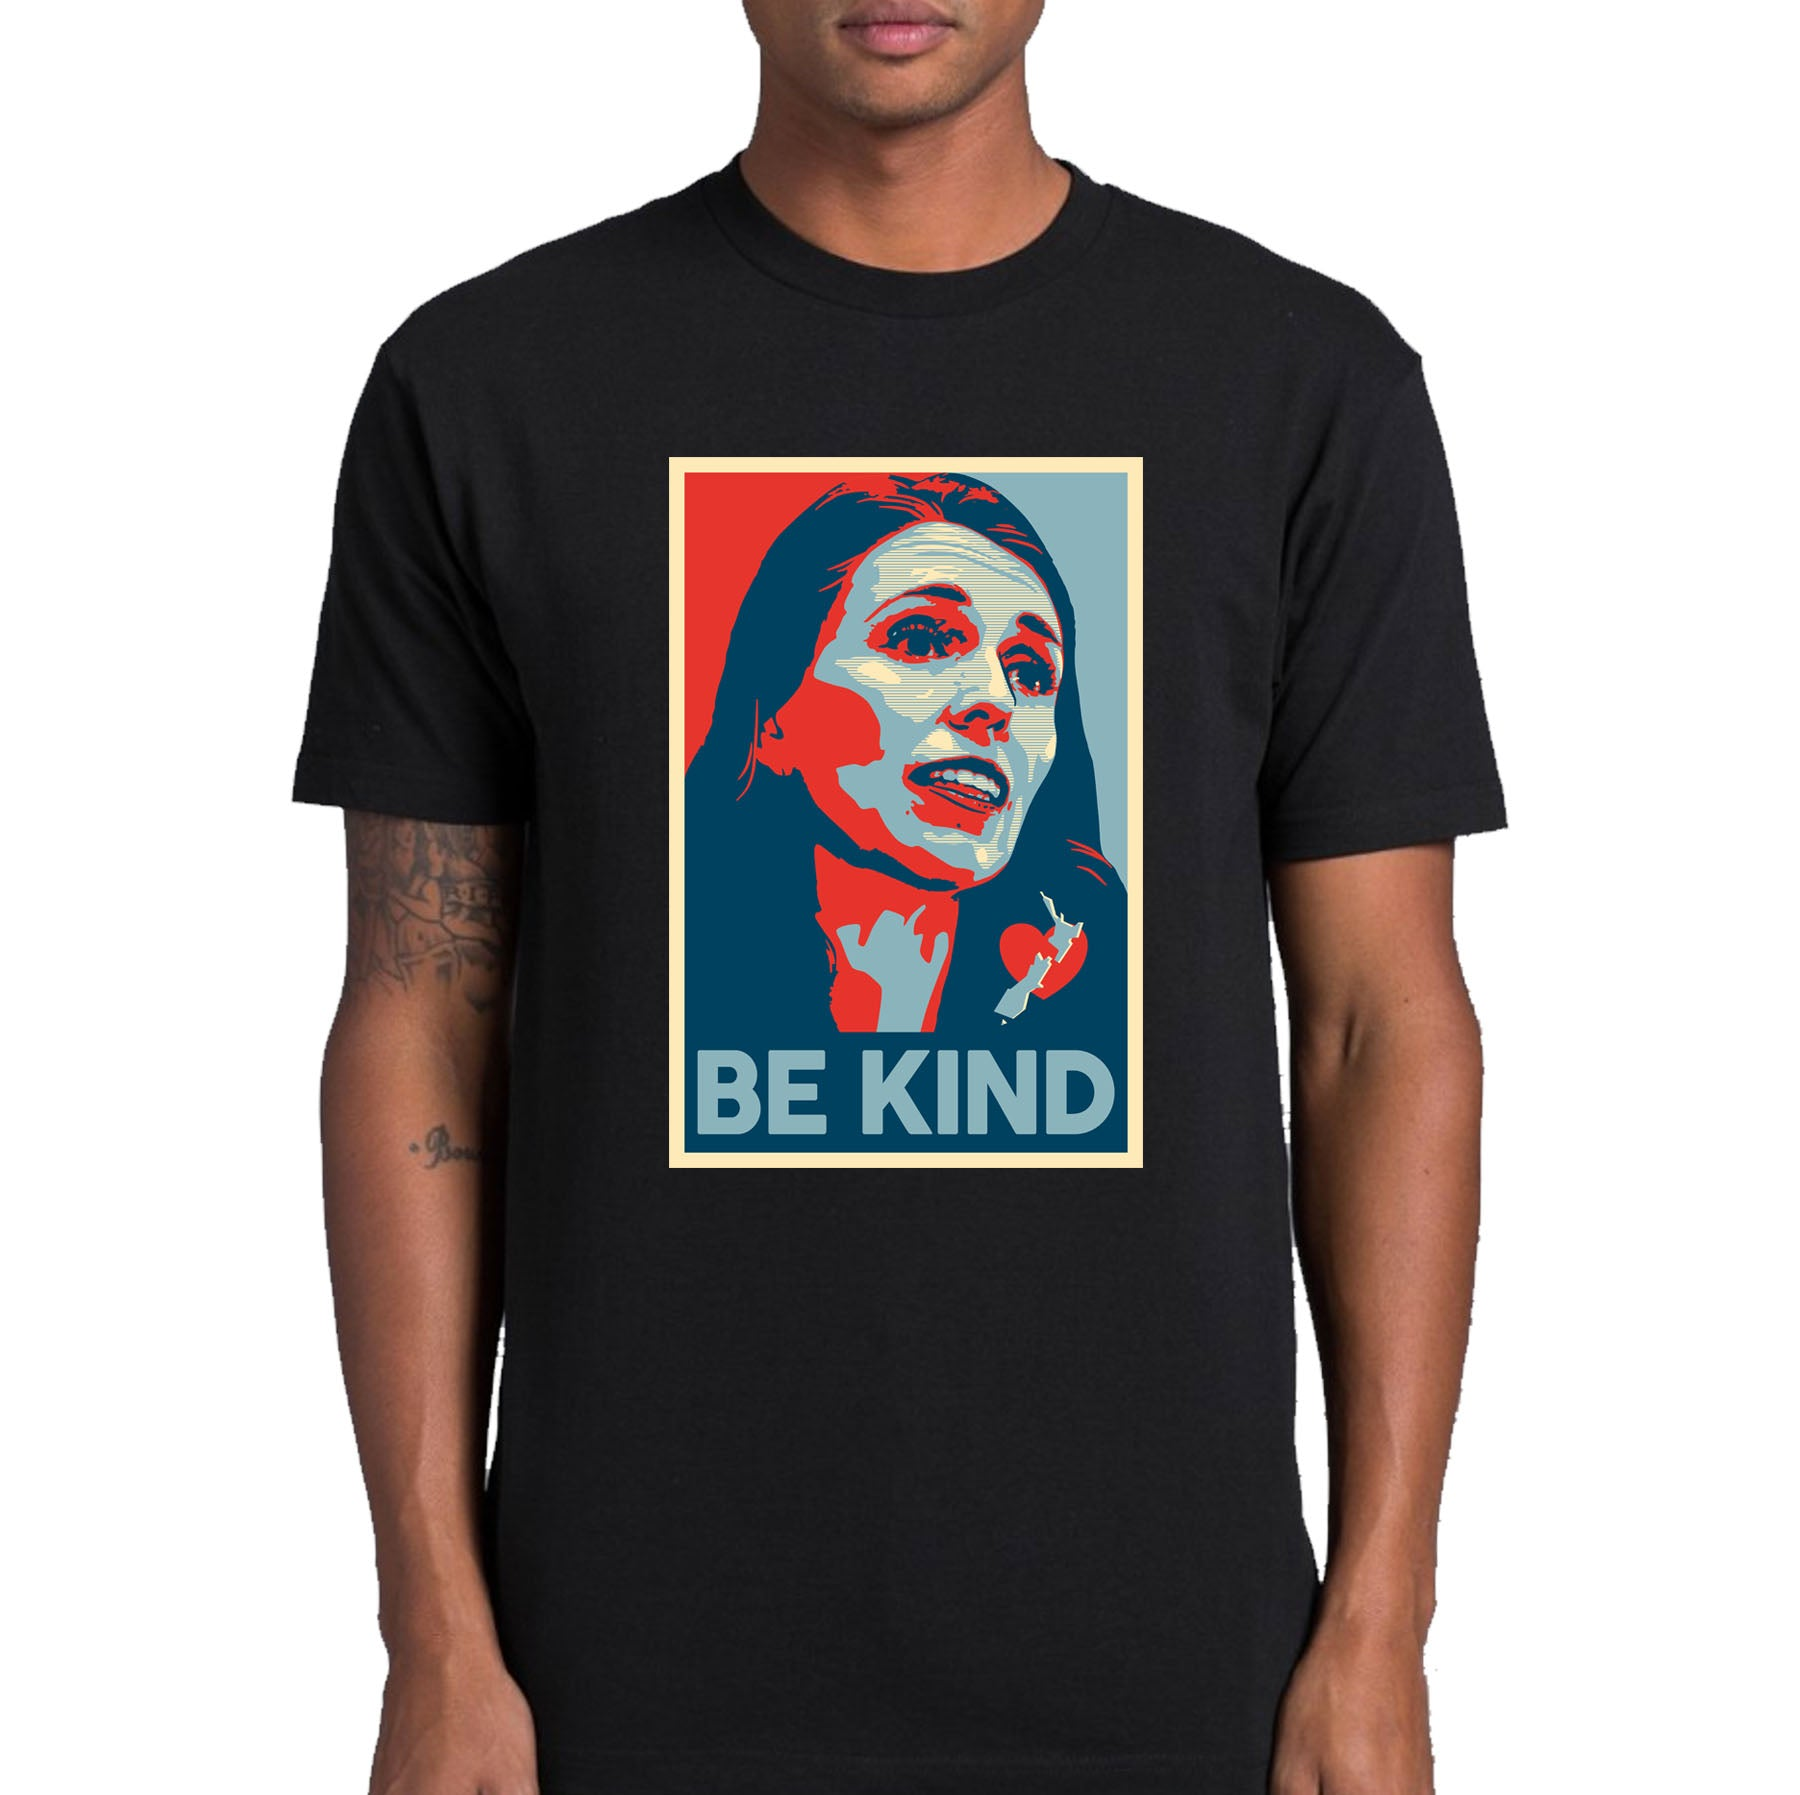 Be Kind - Jacinda Ardern T-shirt